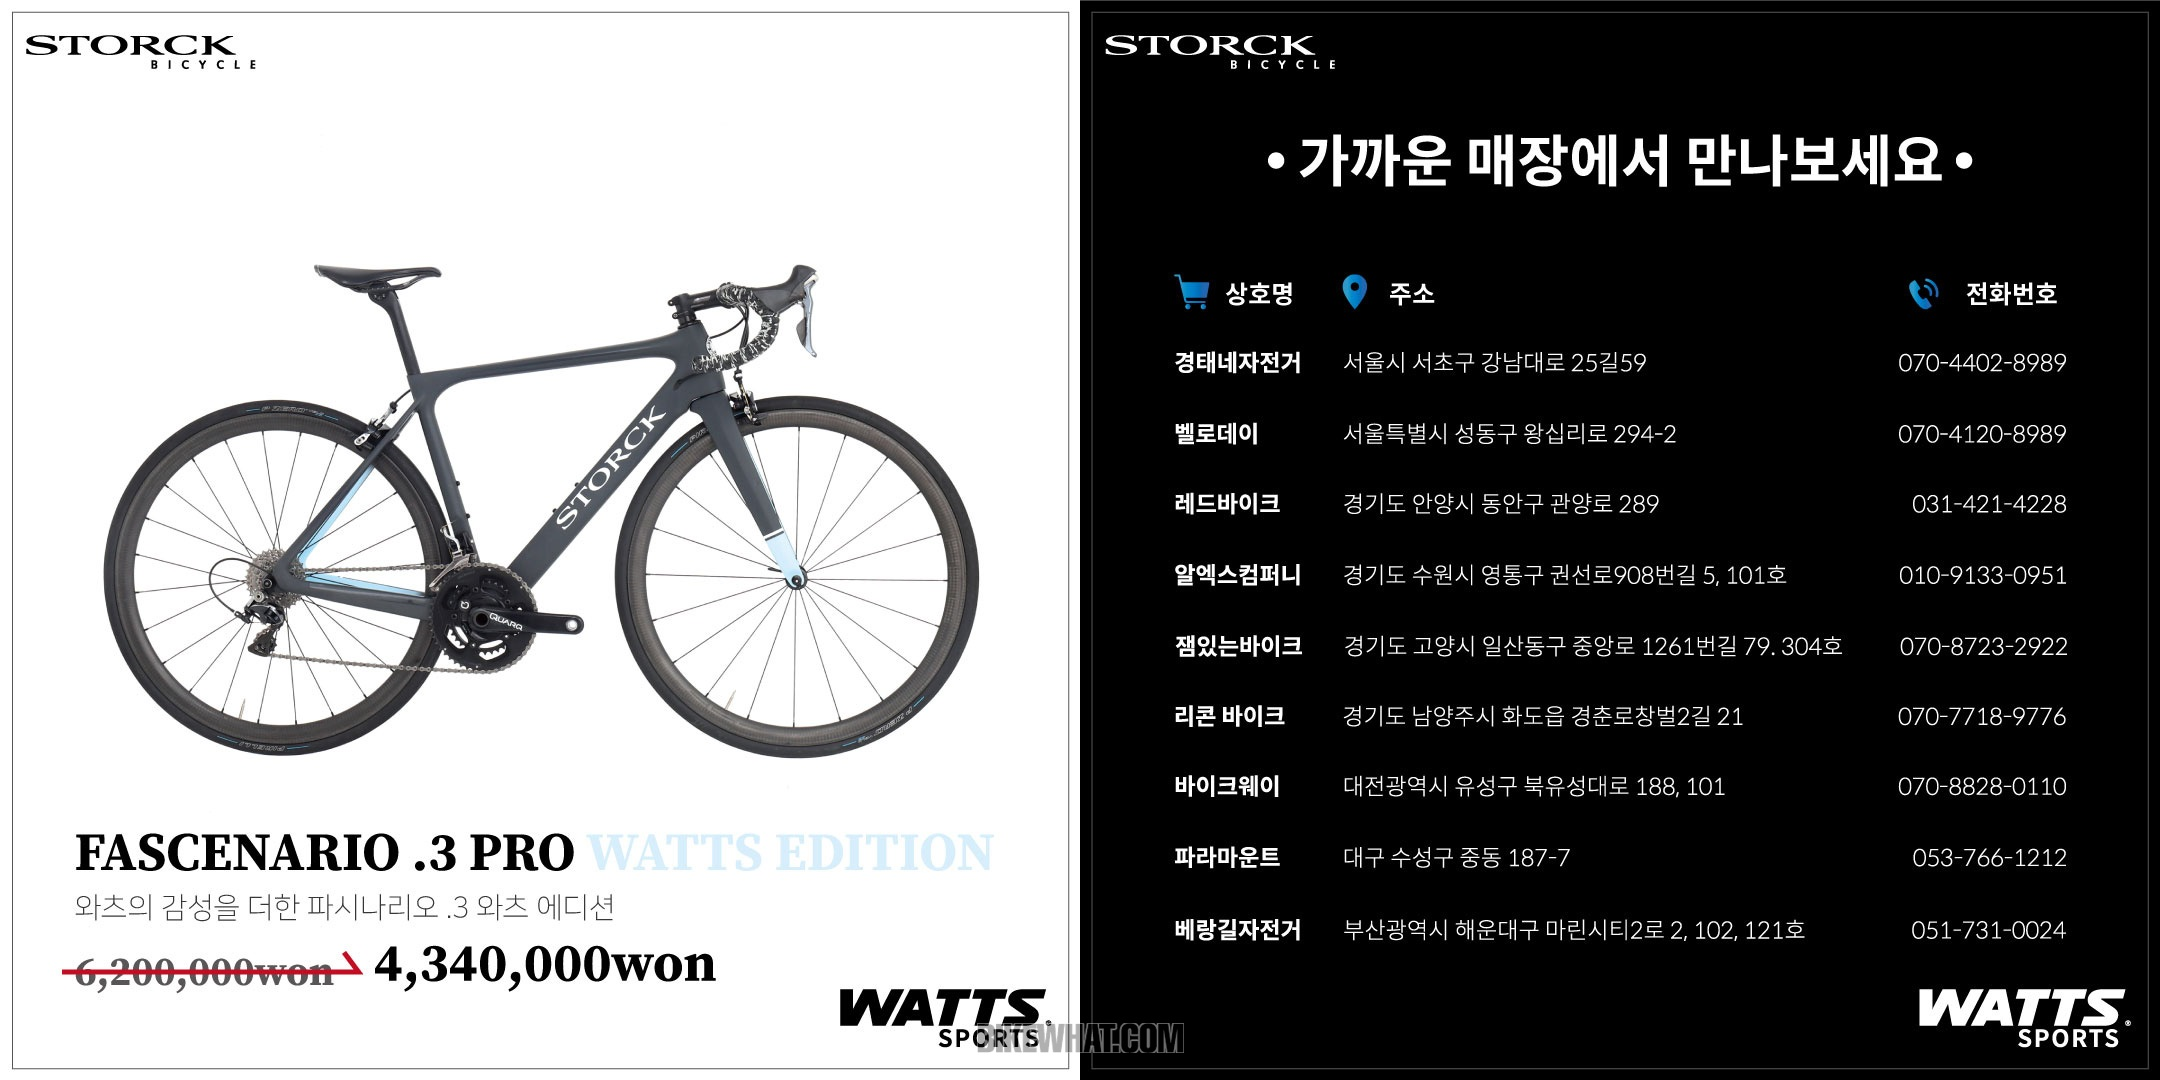 News_storck_sale_3.jpg